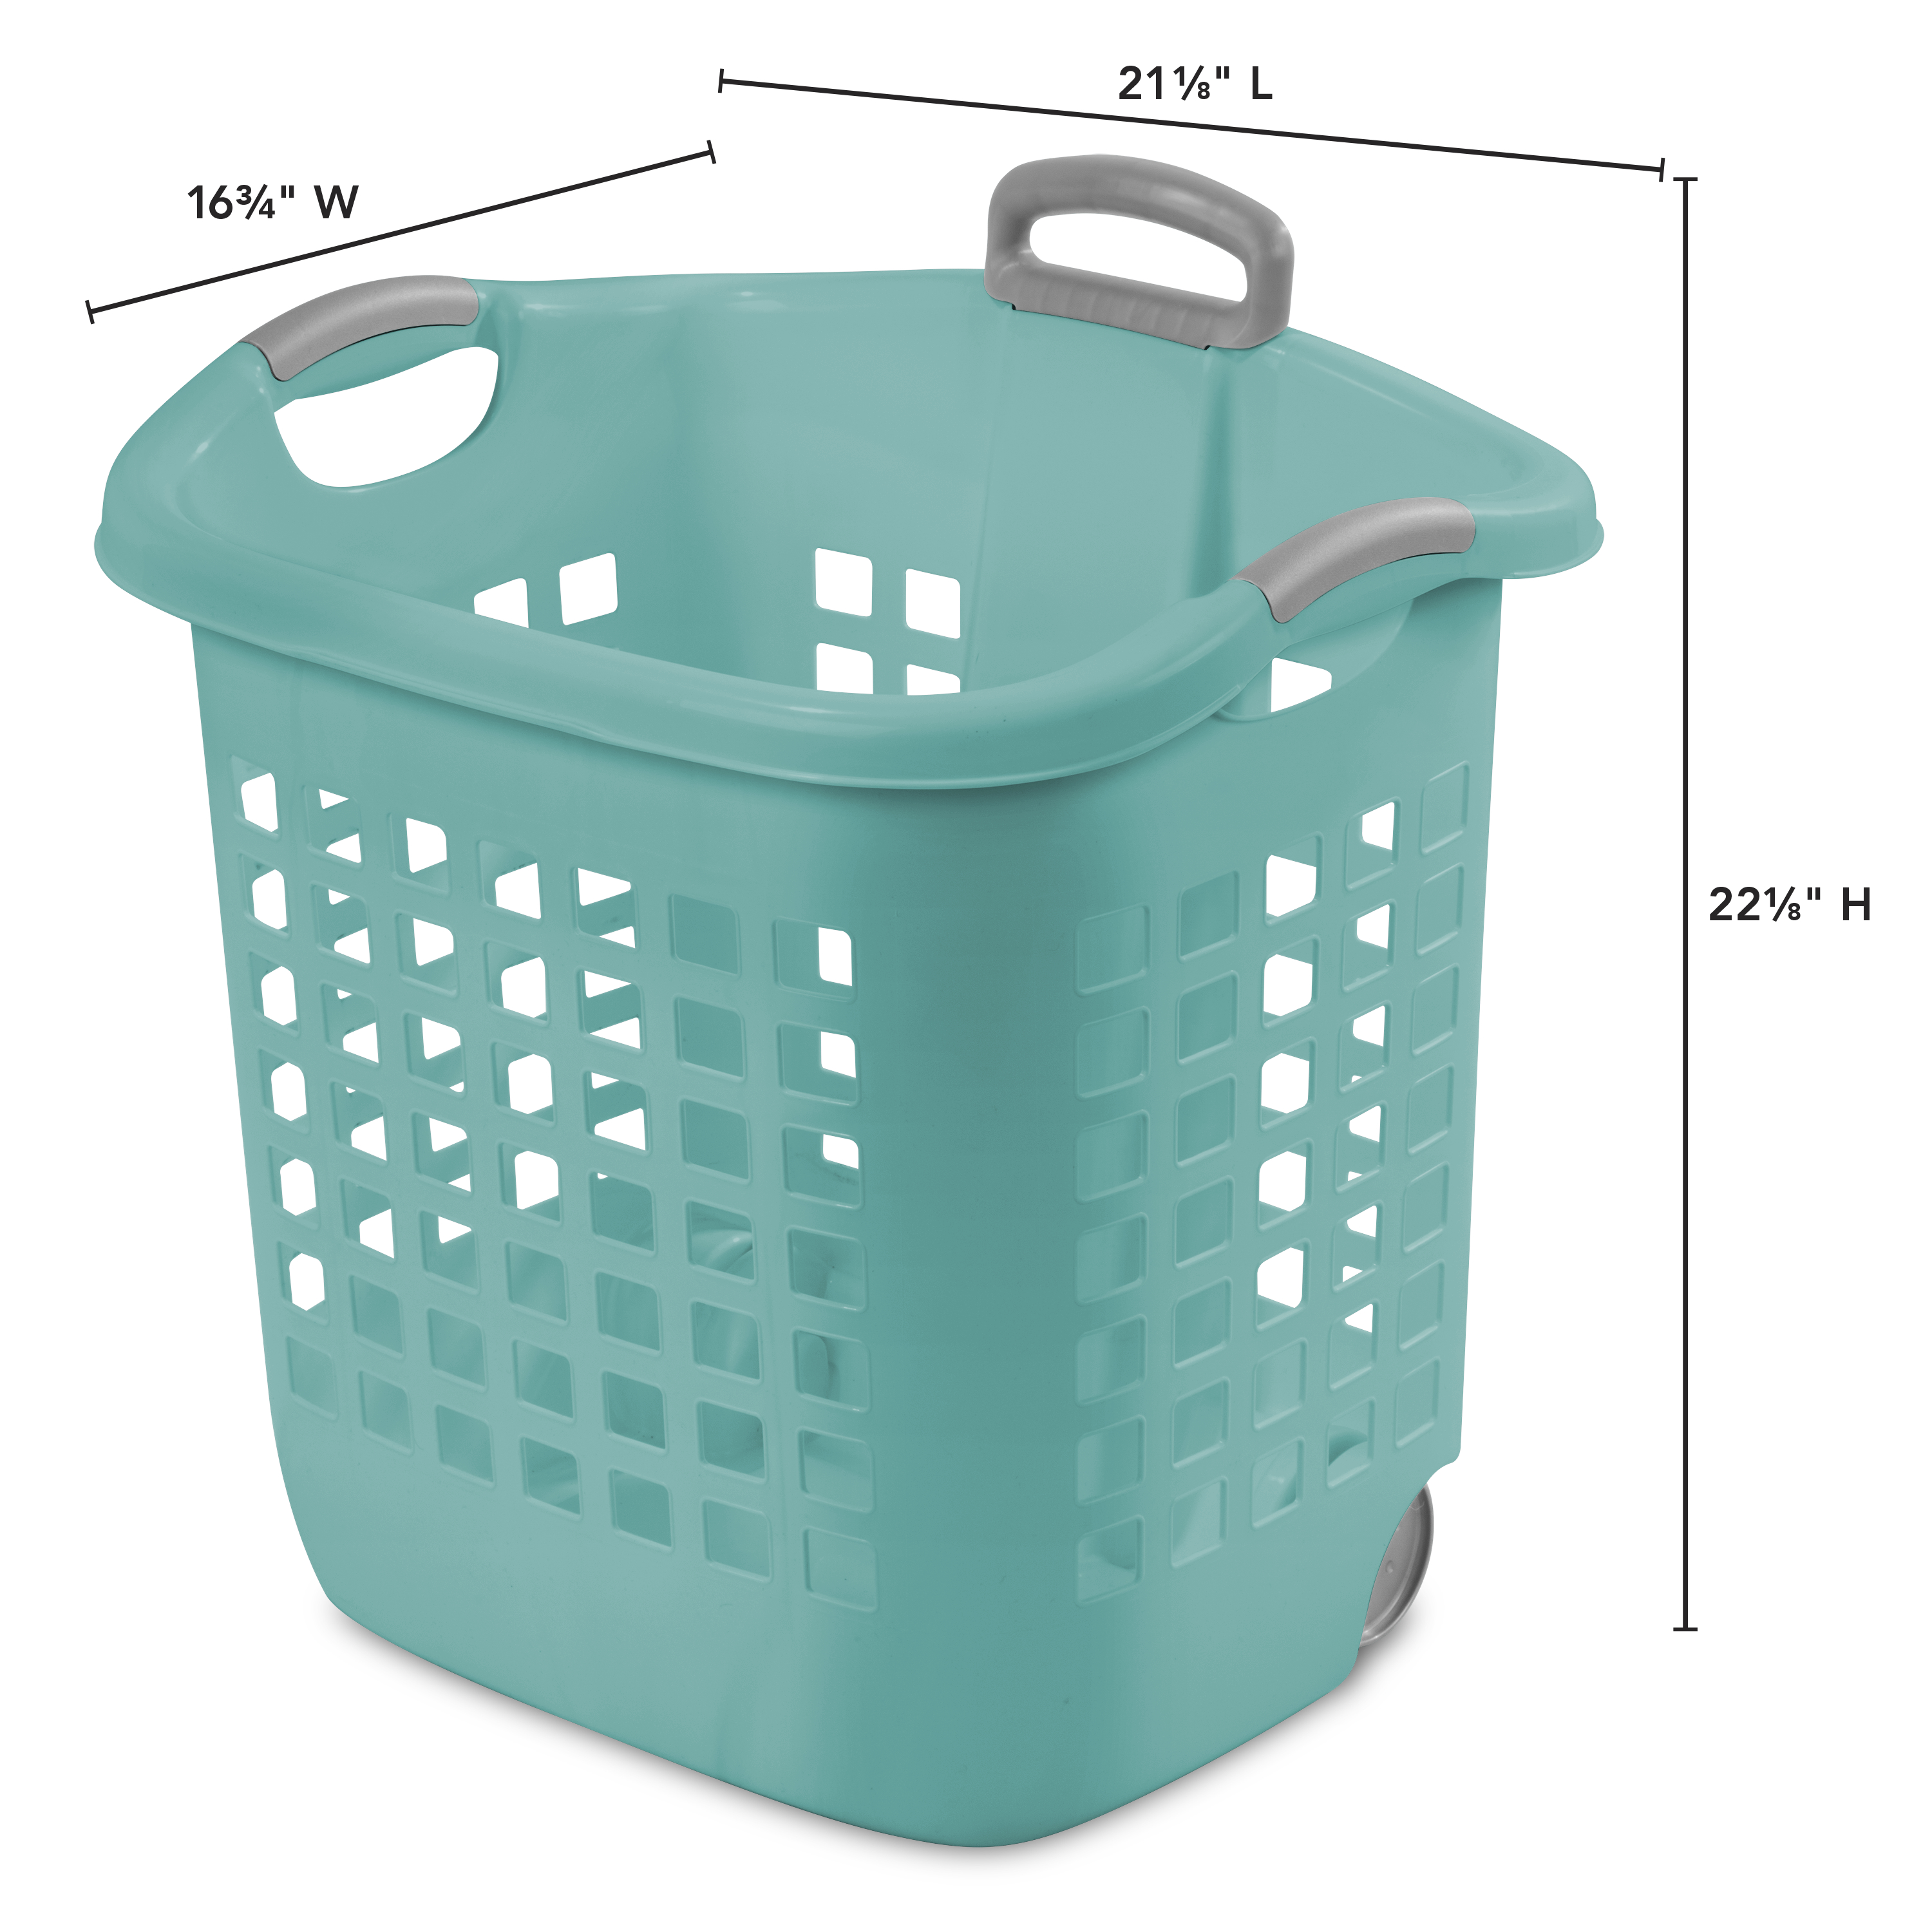 222409909793 further N 5yc1vZc5qk additionally 182209549514 in addition Pull Behind Grocery Cart further Search. on jumbo folding shopping cart